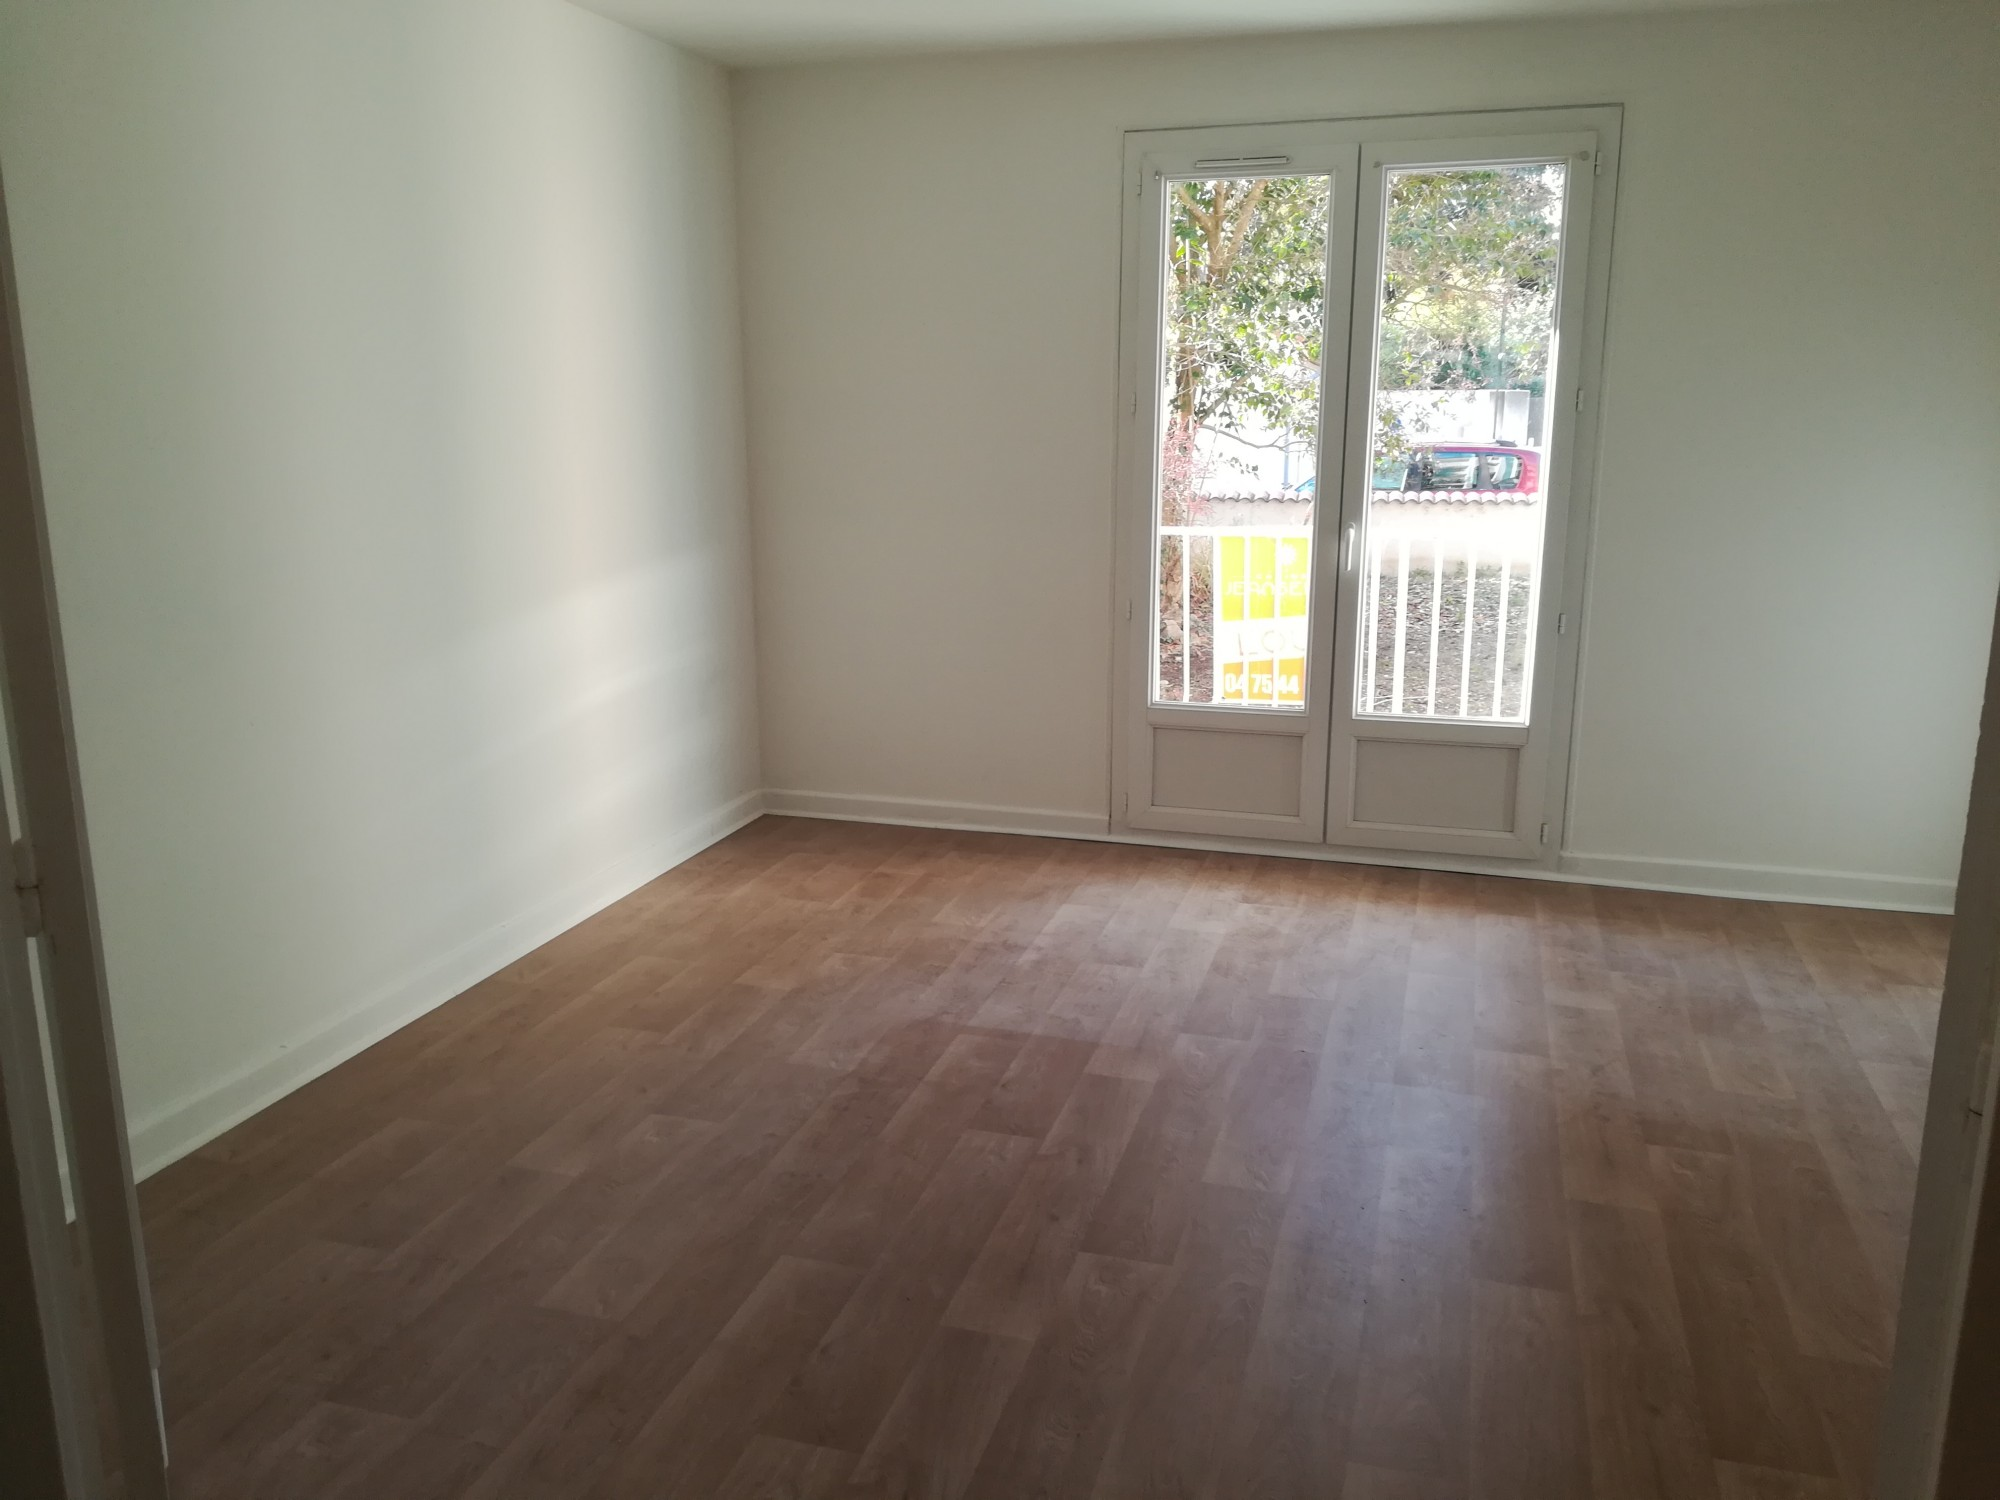 AGENCE IMMOBILIERE VALENCE 26000 LOCATION D'APPARTEMENTS